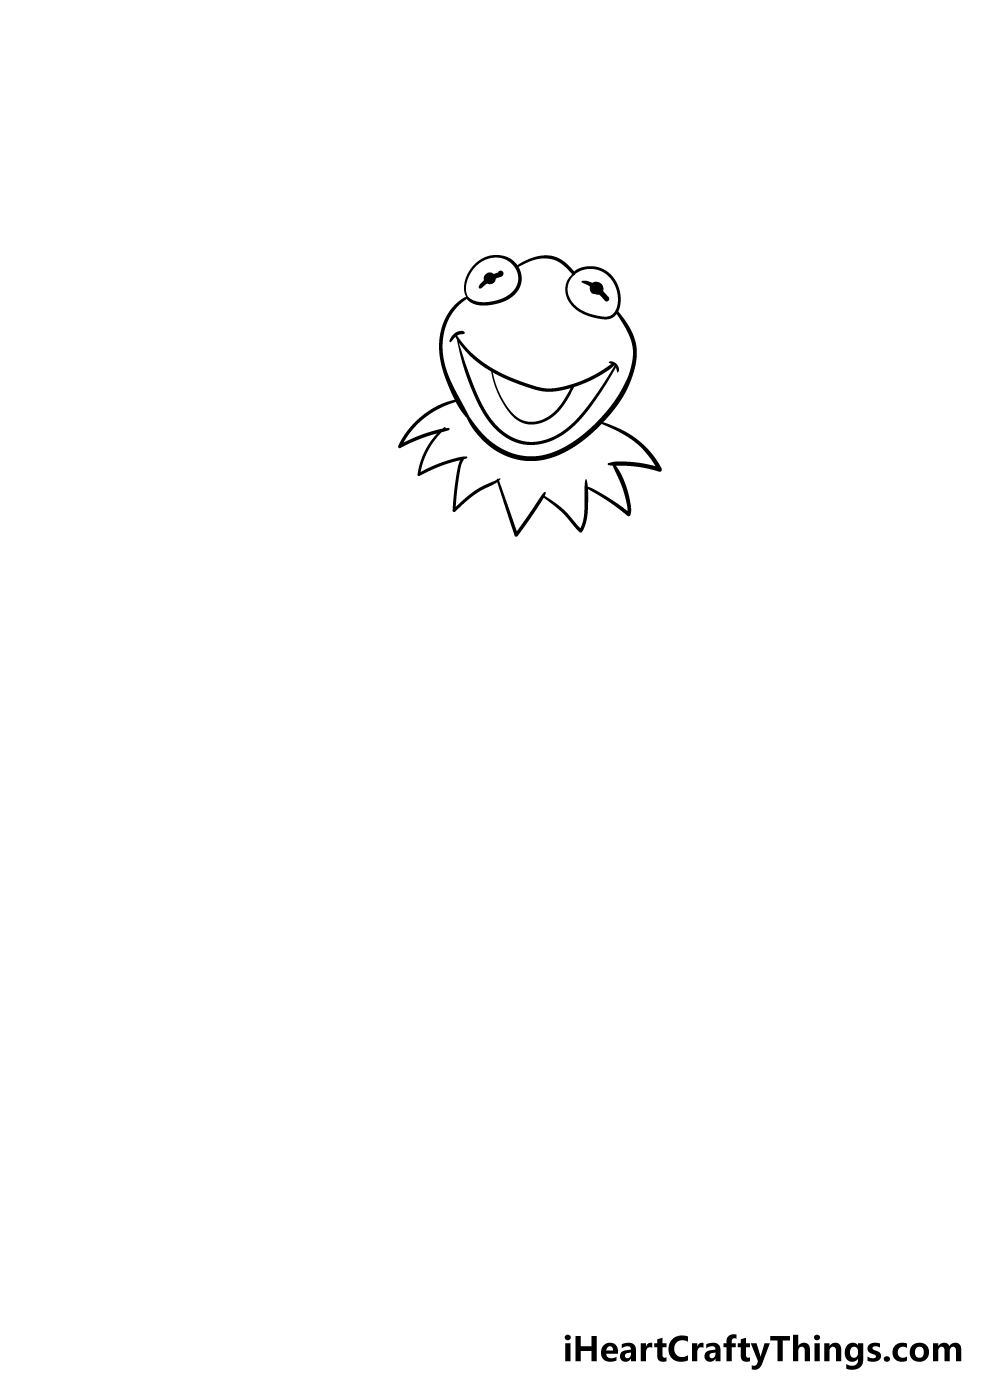 drawing Kermit the frog step 3